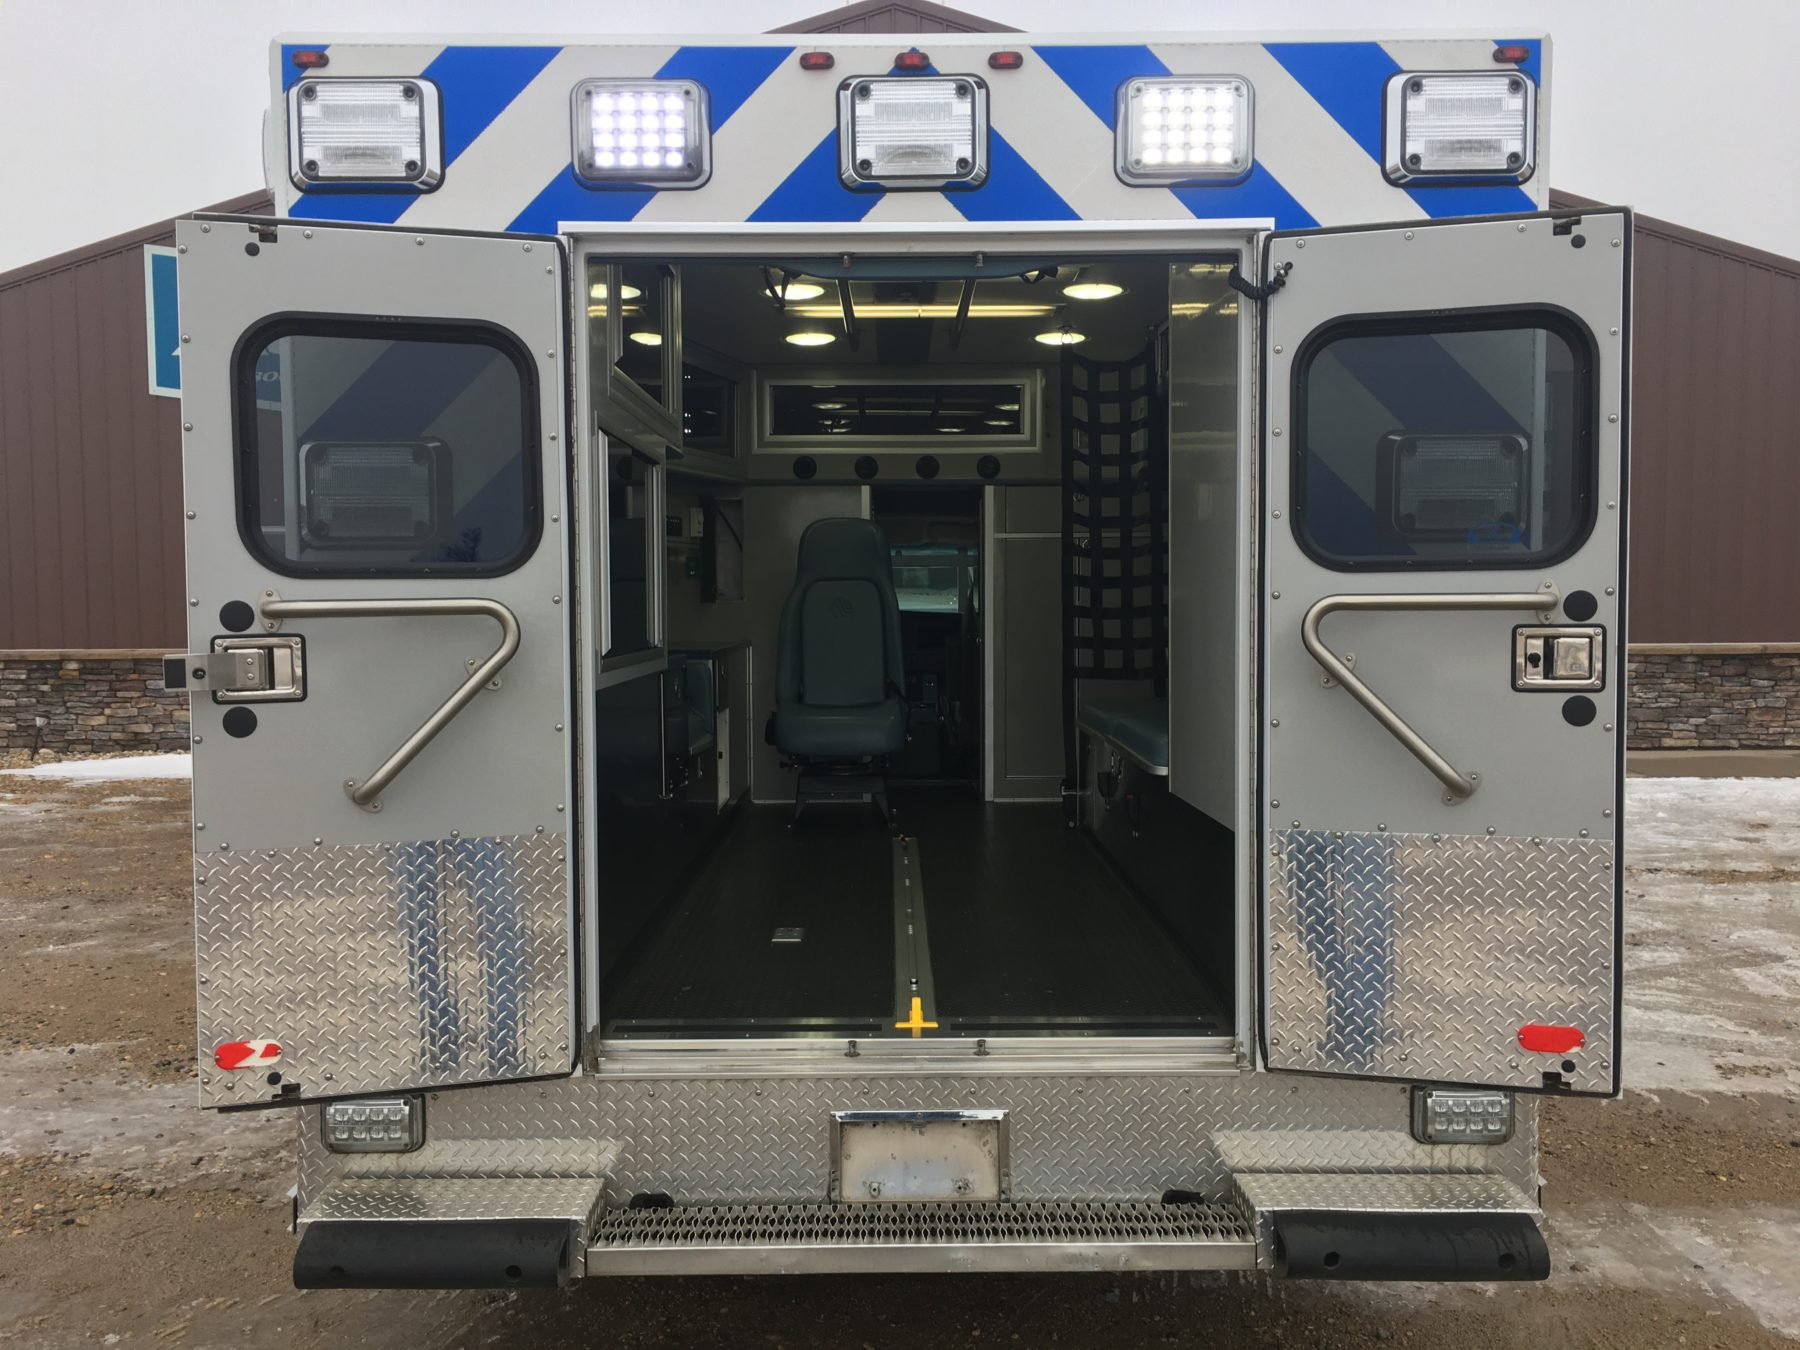 2014 Chevrolet G4500 Type 3 Ambulance For Sale – Picture 8